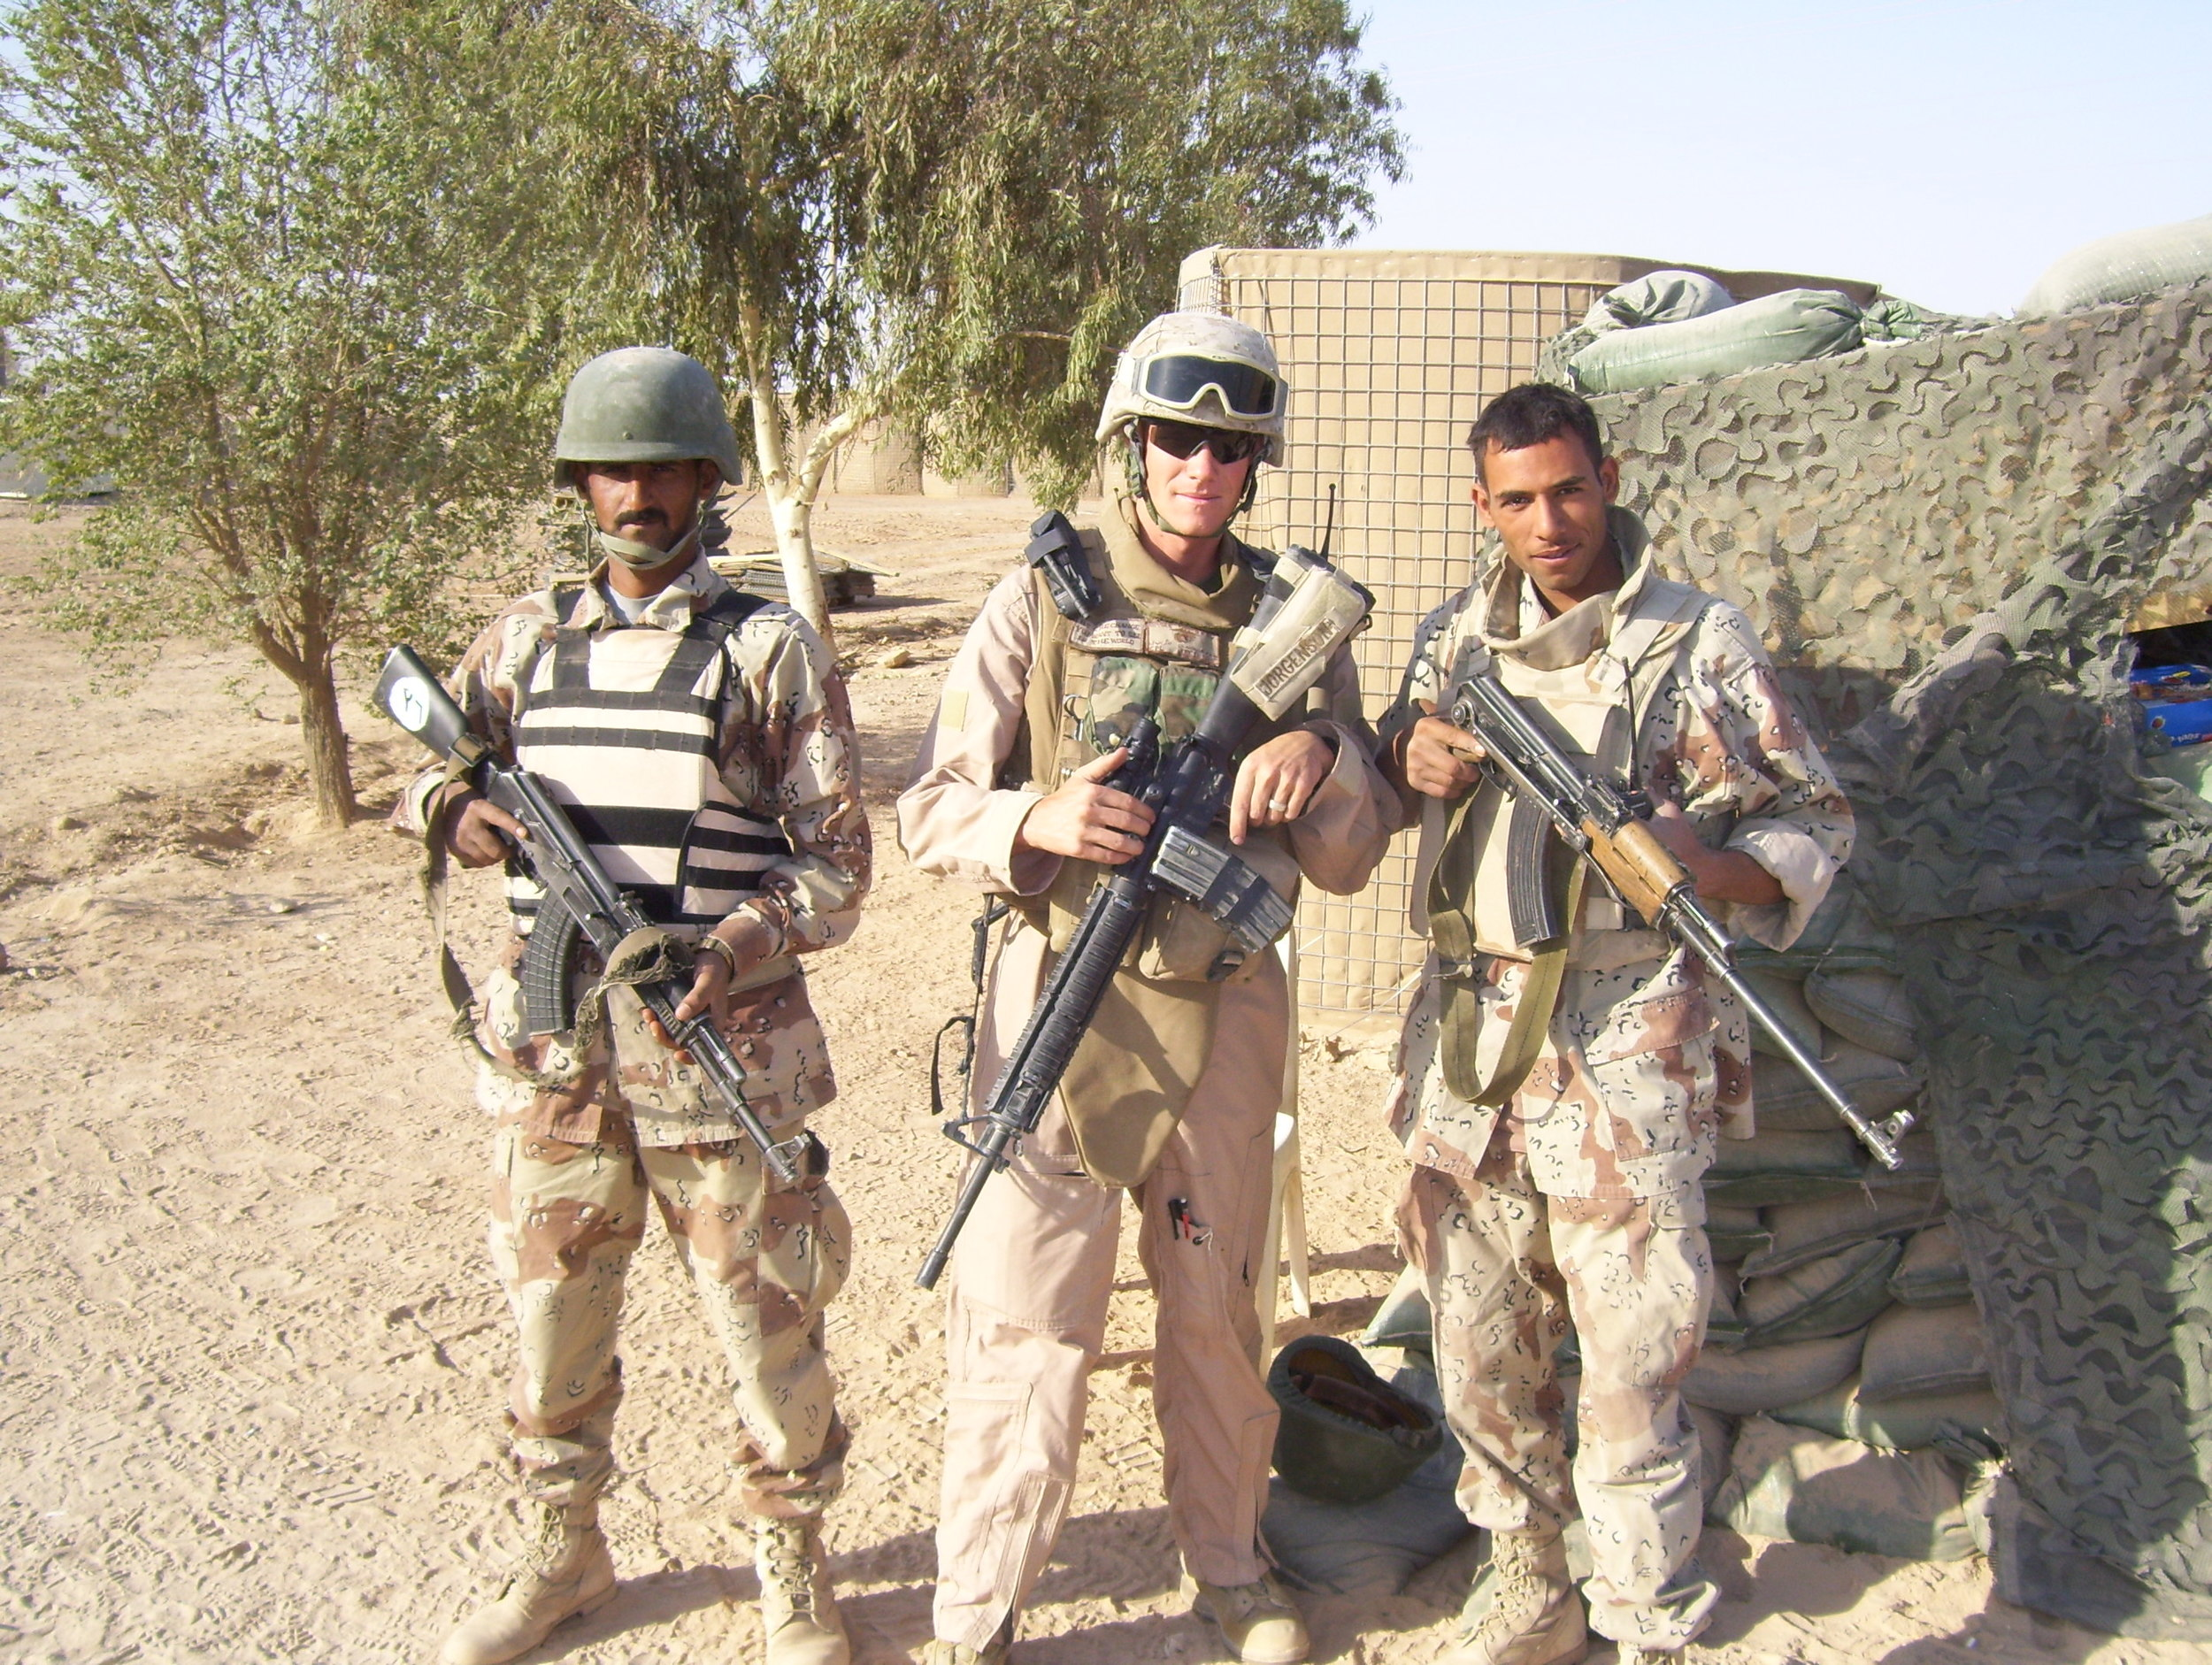 Iraq 2007 / Iraqi army